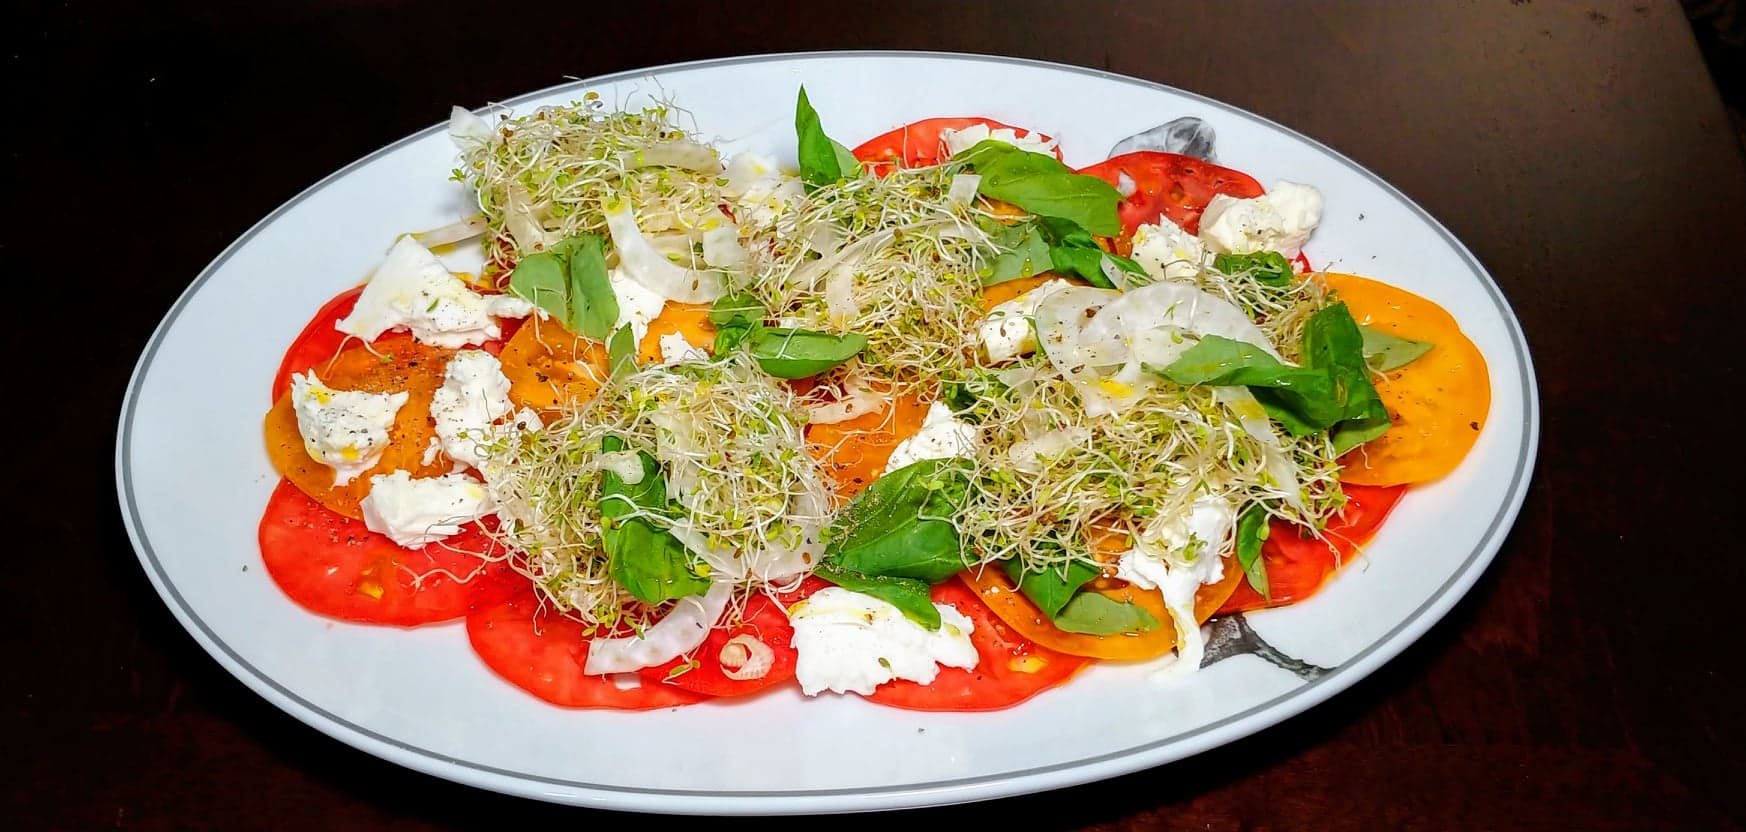 Tomato carpaccio with fennel , alfalfa sprouts and basil  vinaigrette